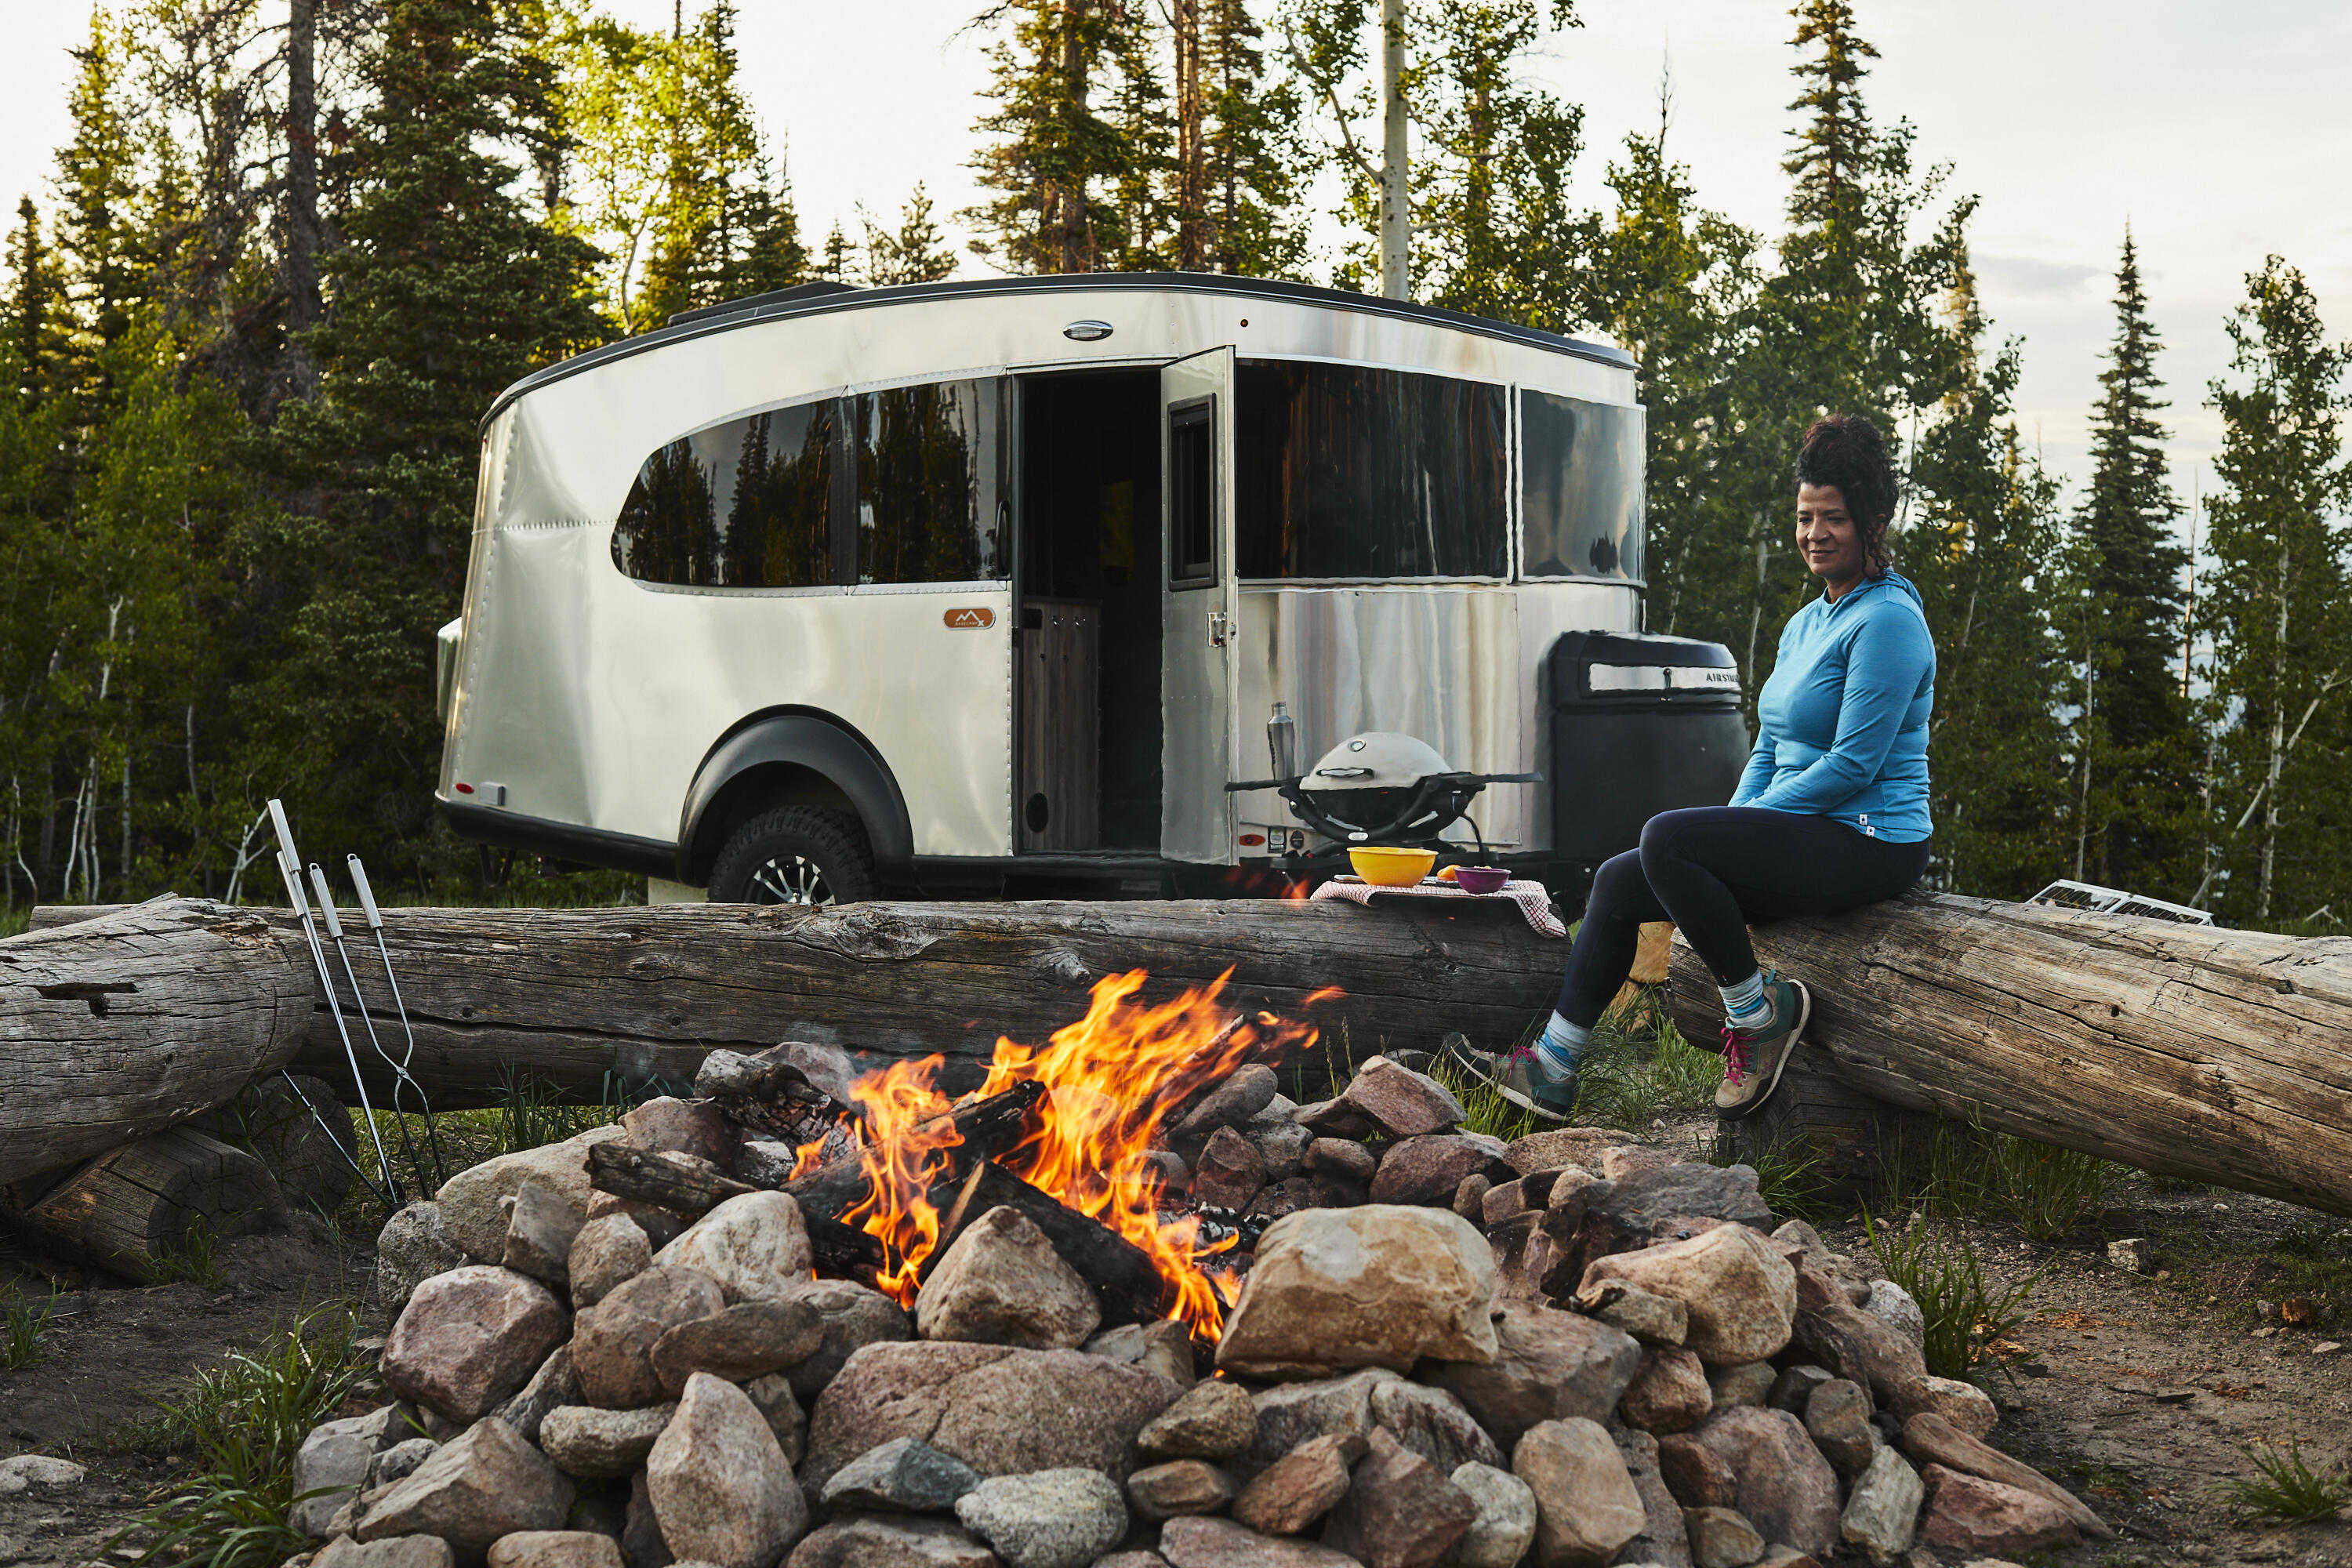 Airstream Basecamp 20 and 20x